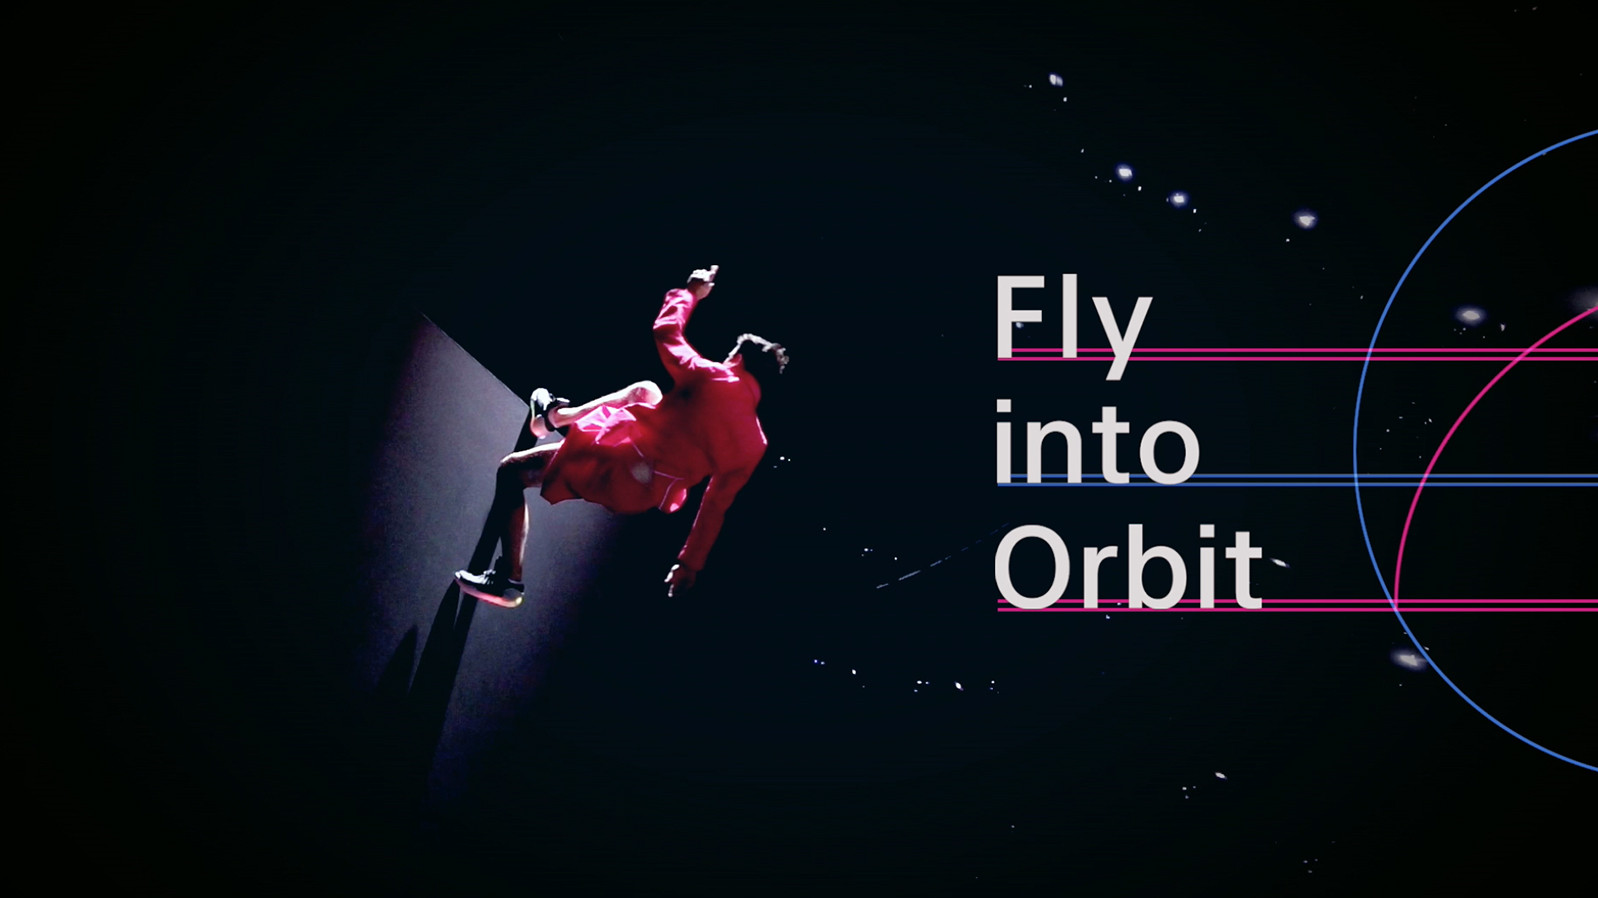 ソニー「RX0 - Fly into Orbit」 [ TVCM/ムービー撮影 ]